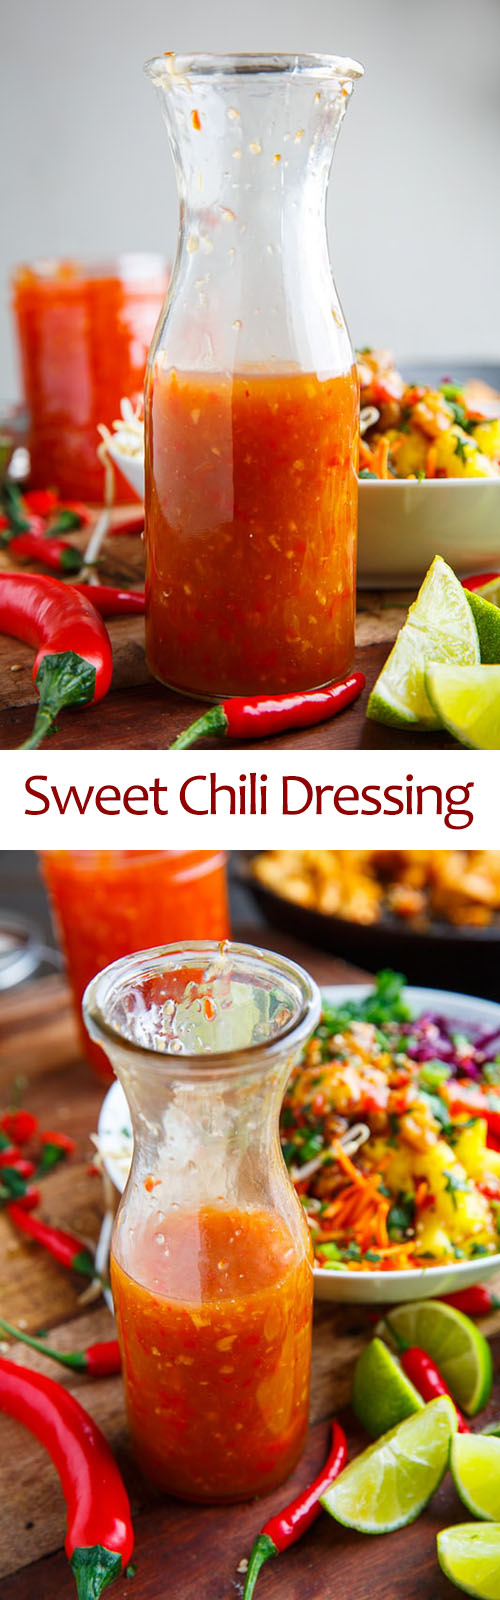 Thai Sweet Chili Dressing